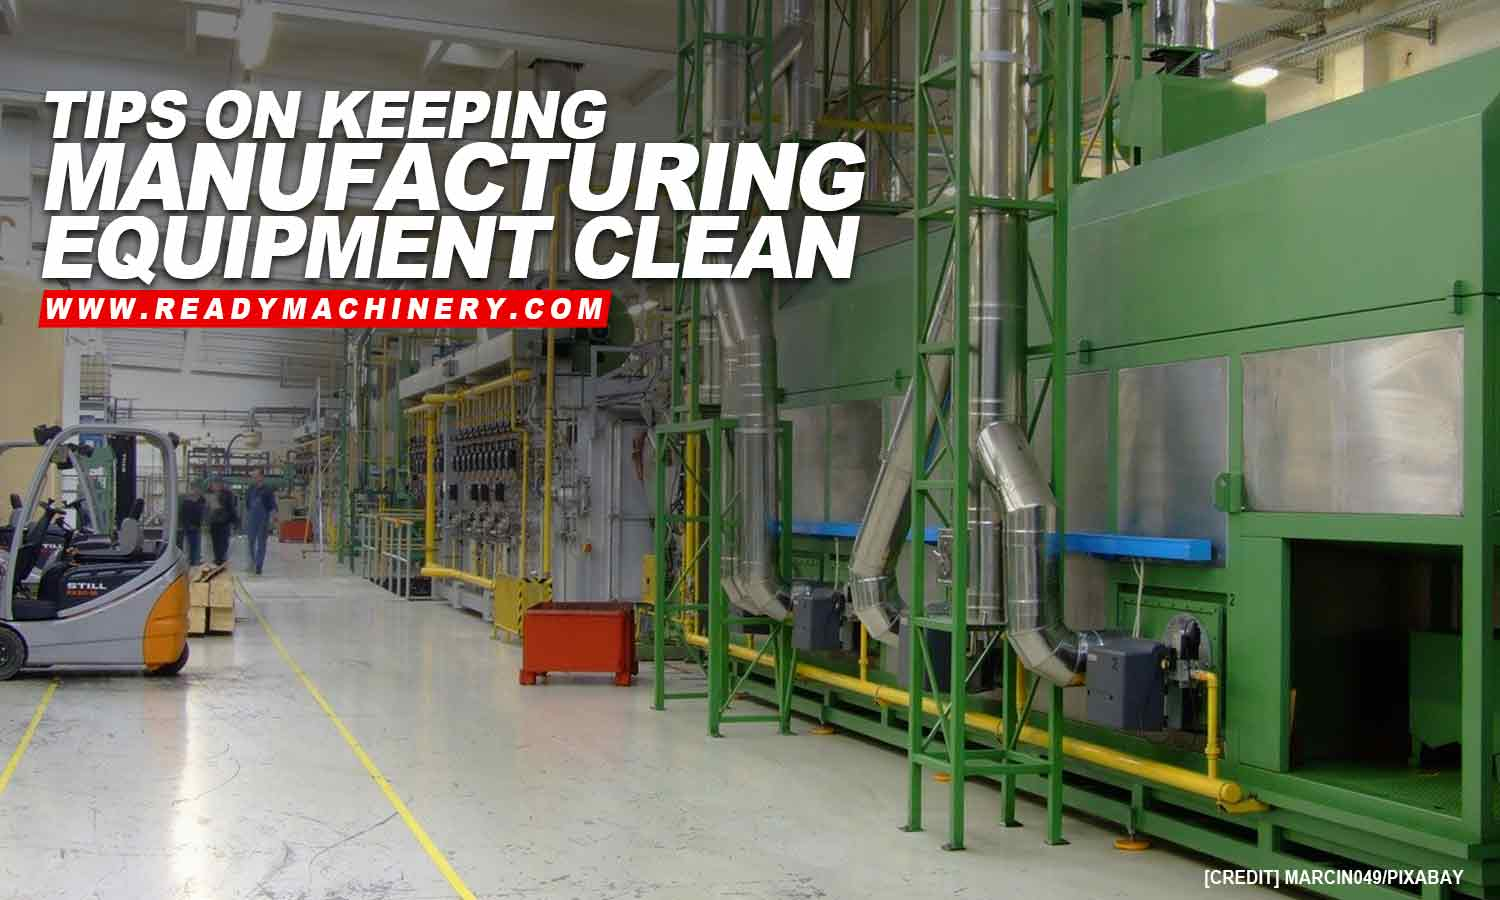 Tips on Keeping Manufacturing Equipment Clean